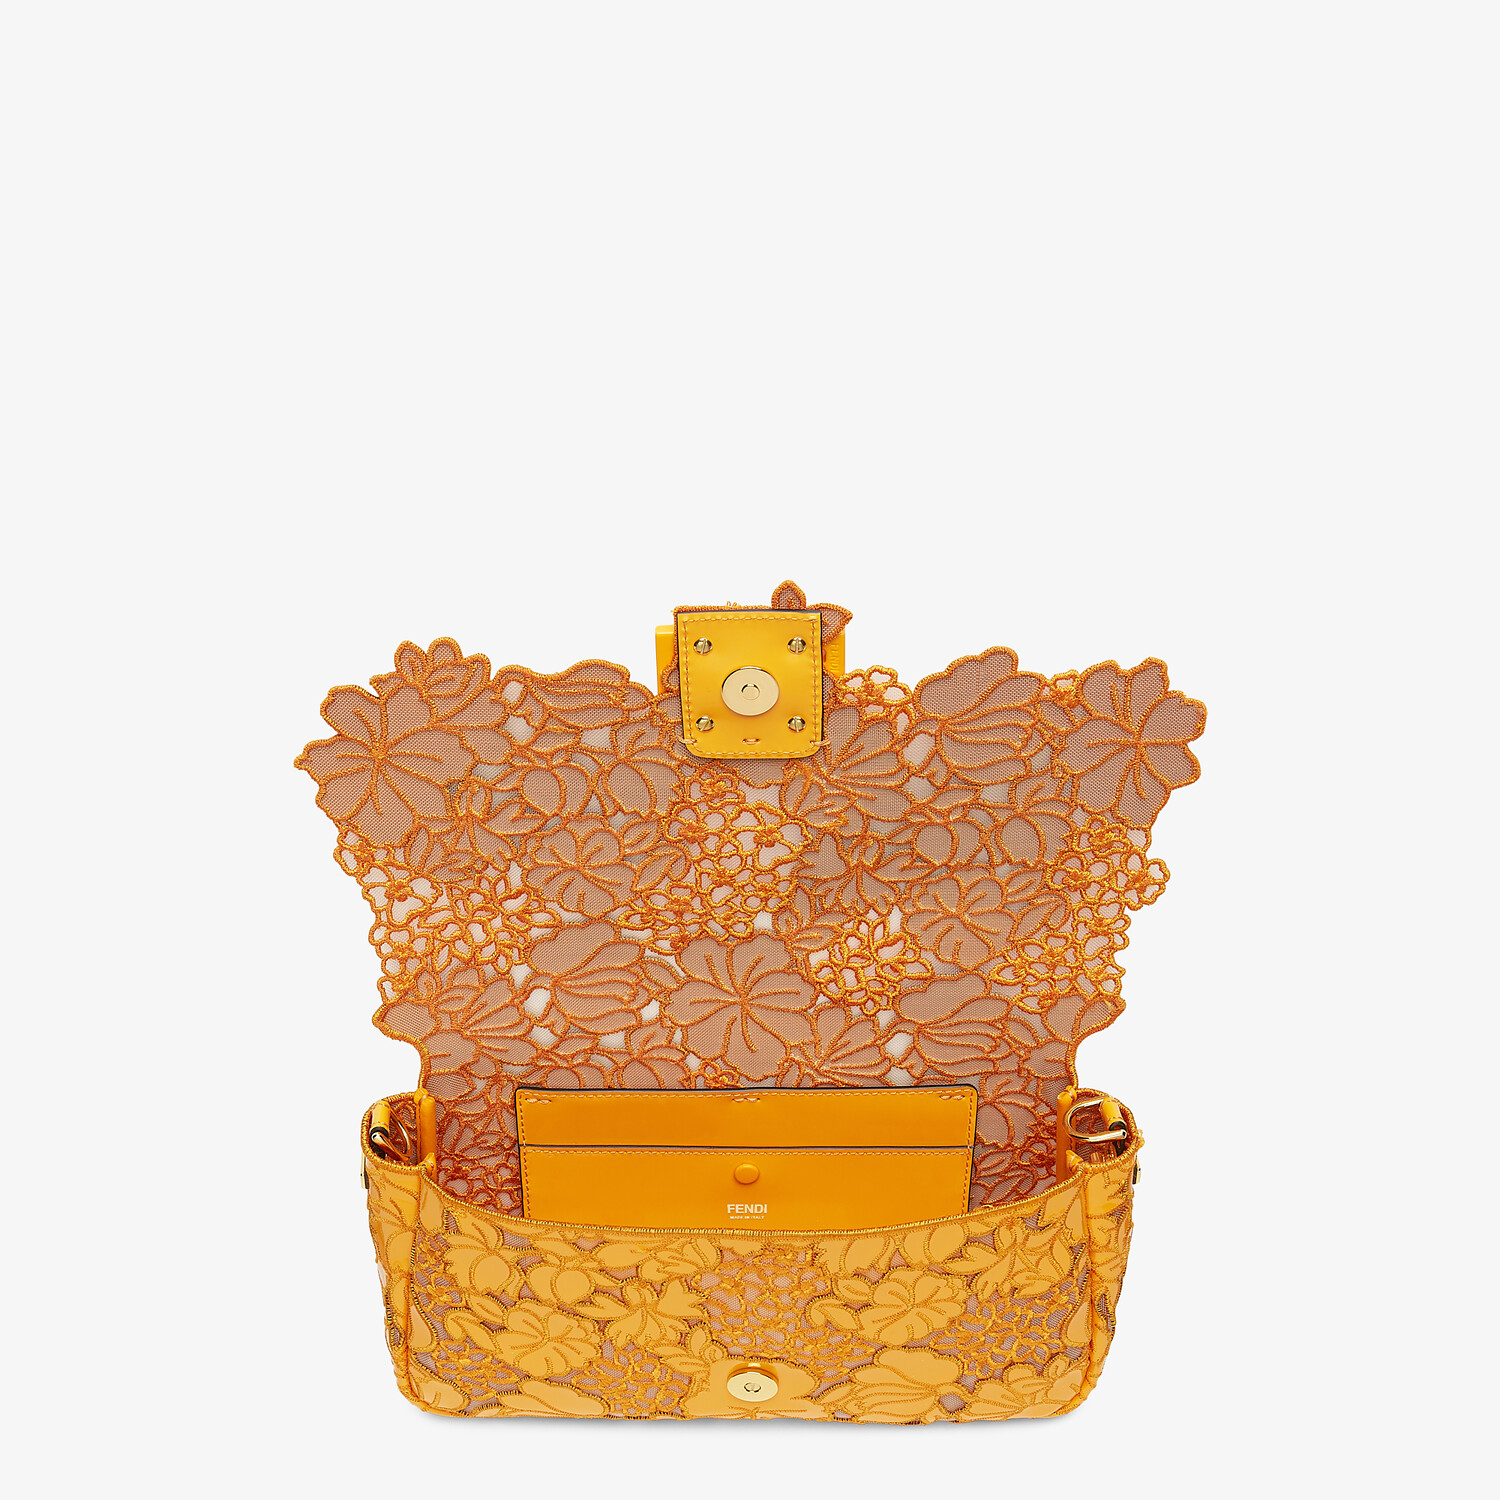 FENDI BAGUETTE - Embroidered orange patent leather bag - view 5 detail